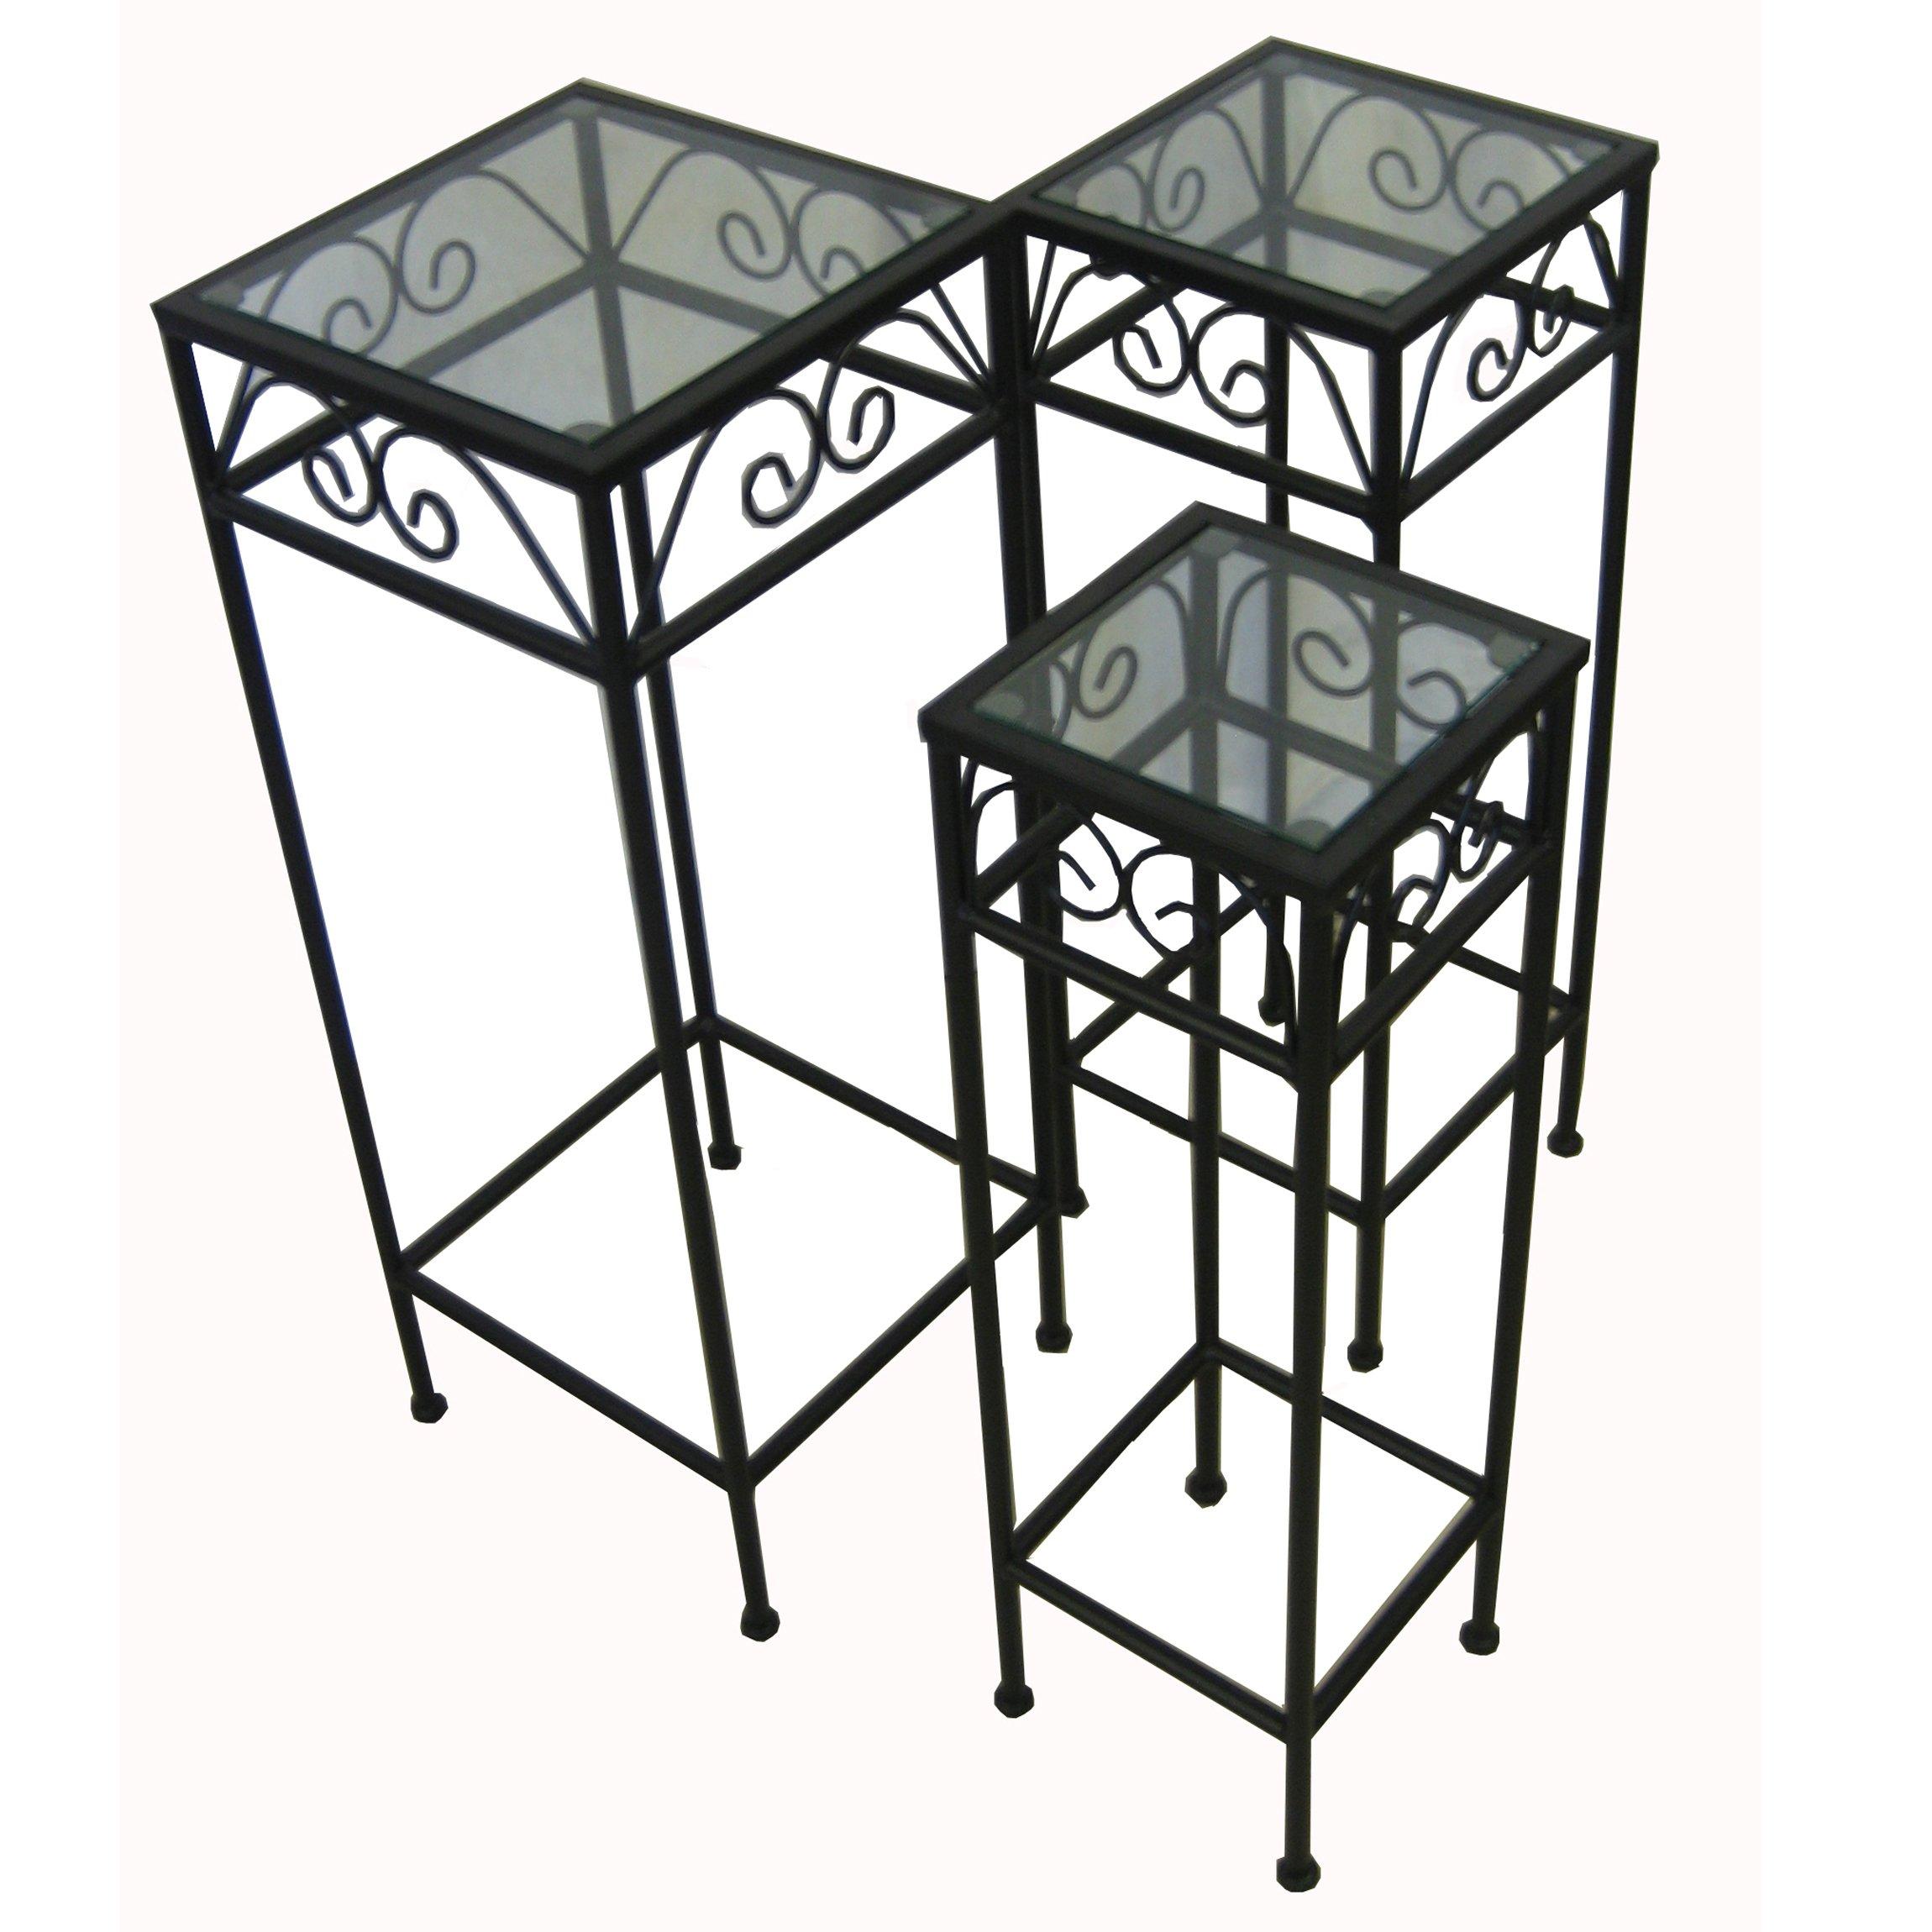 Nesting Tall Square Tables Set of Three - Black by Pangaea Home and Garden